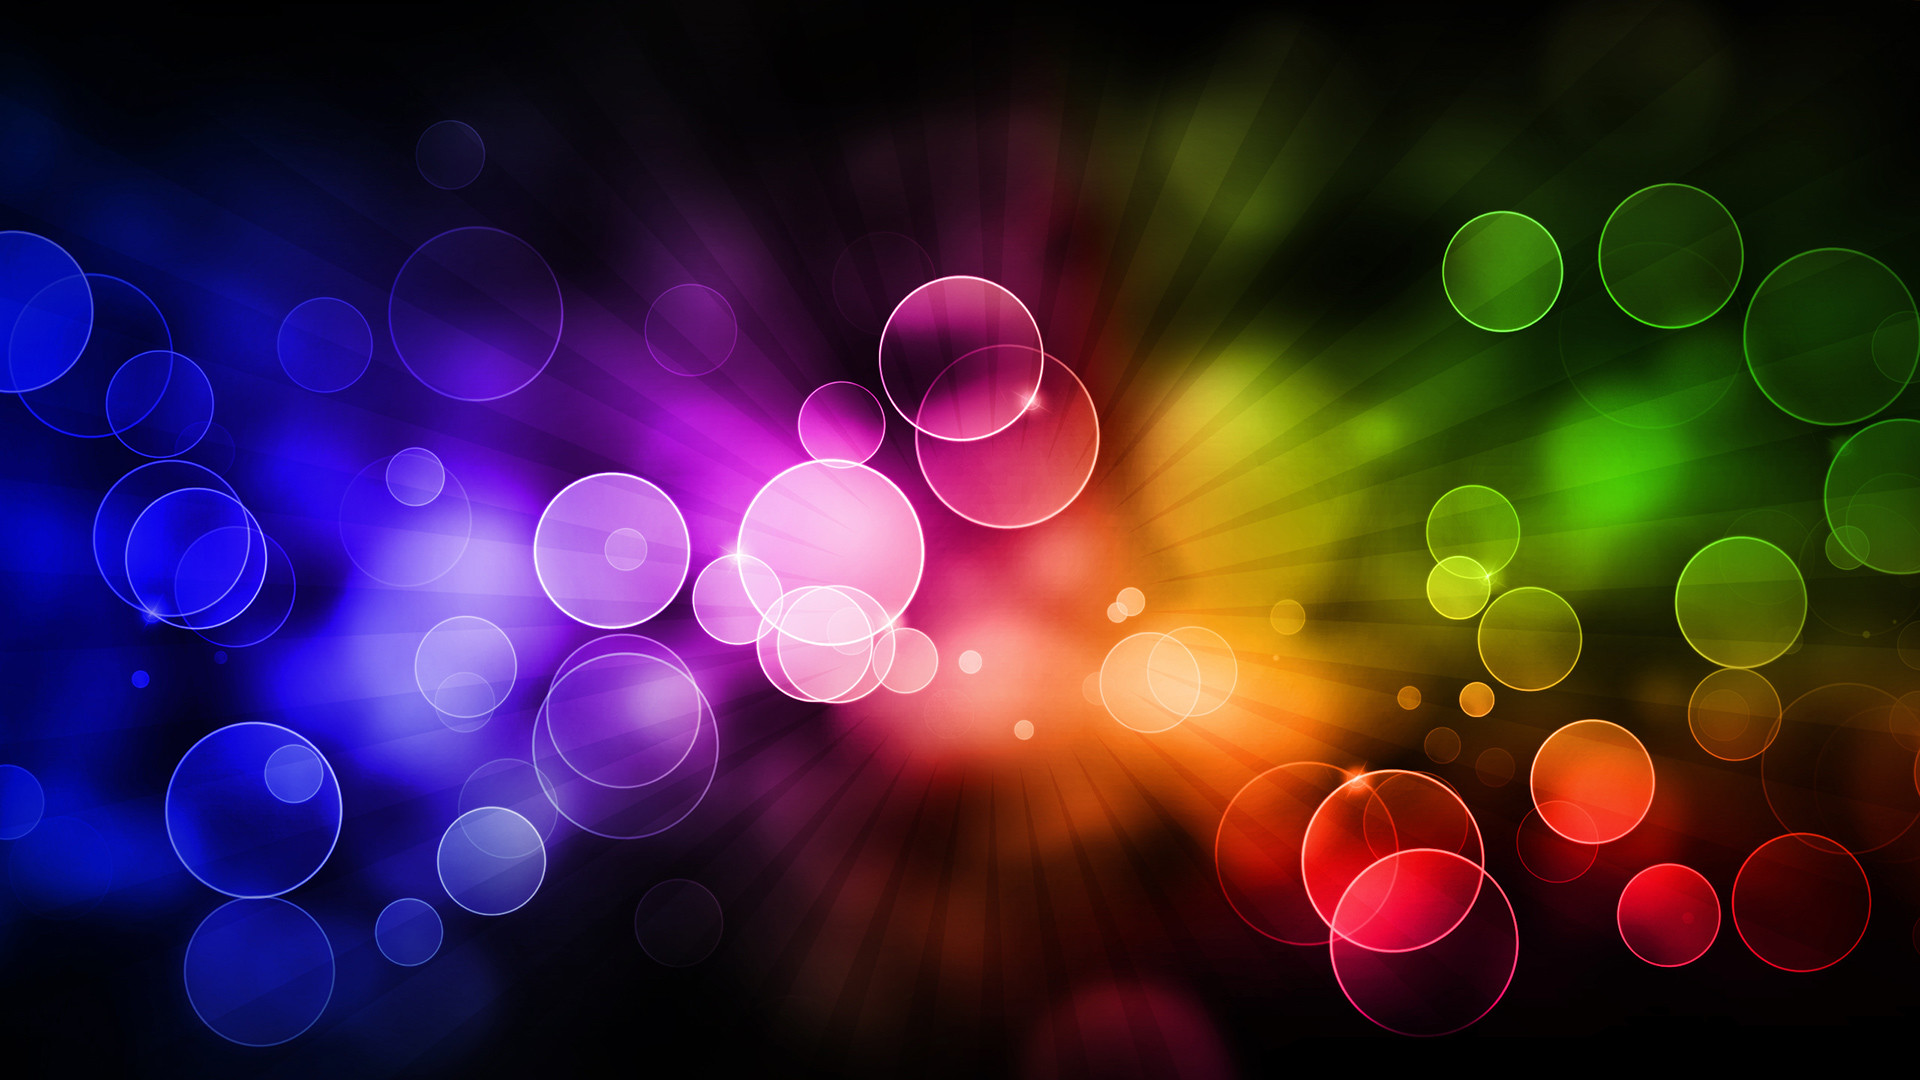 Beautiful Rainbow Wallpaper 49 Images